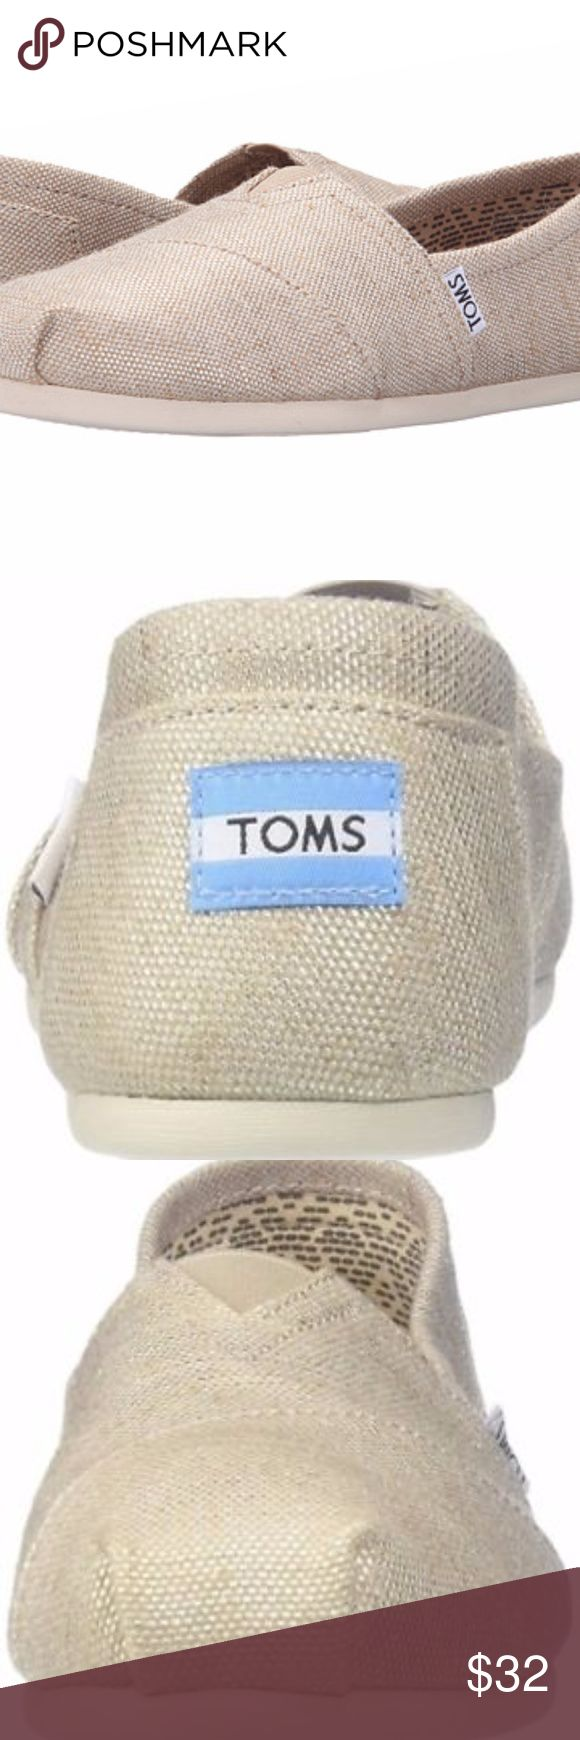 Toms CLASSIC Womens Natural Metallic Burlap Slipon New Never worn - TOMS Natural Metallic Burlap Classics Vegan Women's Shoes. STYLE # 10008015  Size 7.5  DESCRIPTION: Show off your TOMS with a little shimmer. Featuring metallic burlap, this comfy Classic might just become the star of your outfit.  Metallic burlap upper with TOMS toe-stitch Elastic gore for easy fit Molded footbed for increased cushioning EVA rubber outsole with logo Toms Shoes Flats & Loafers